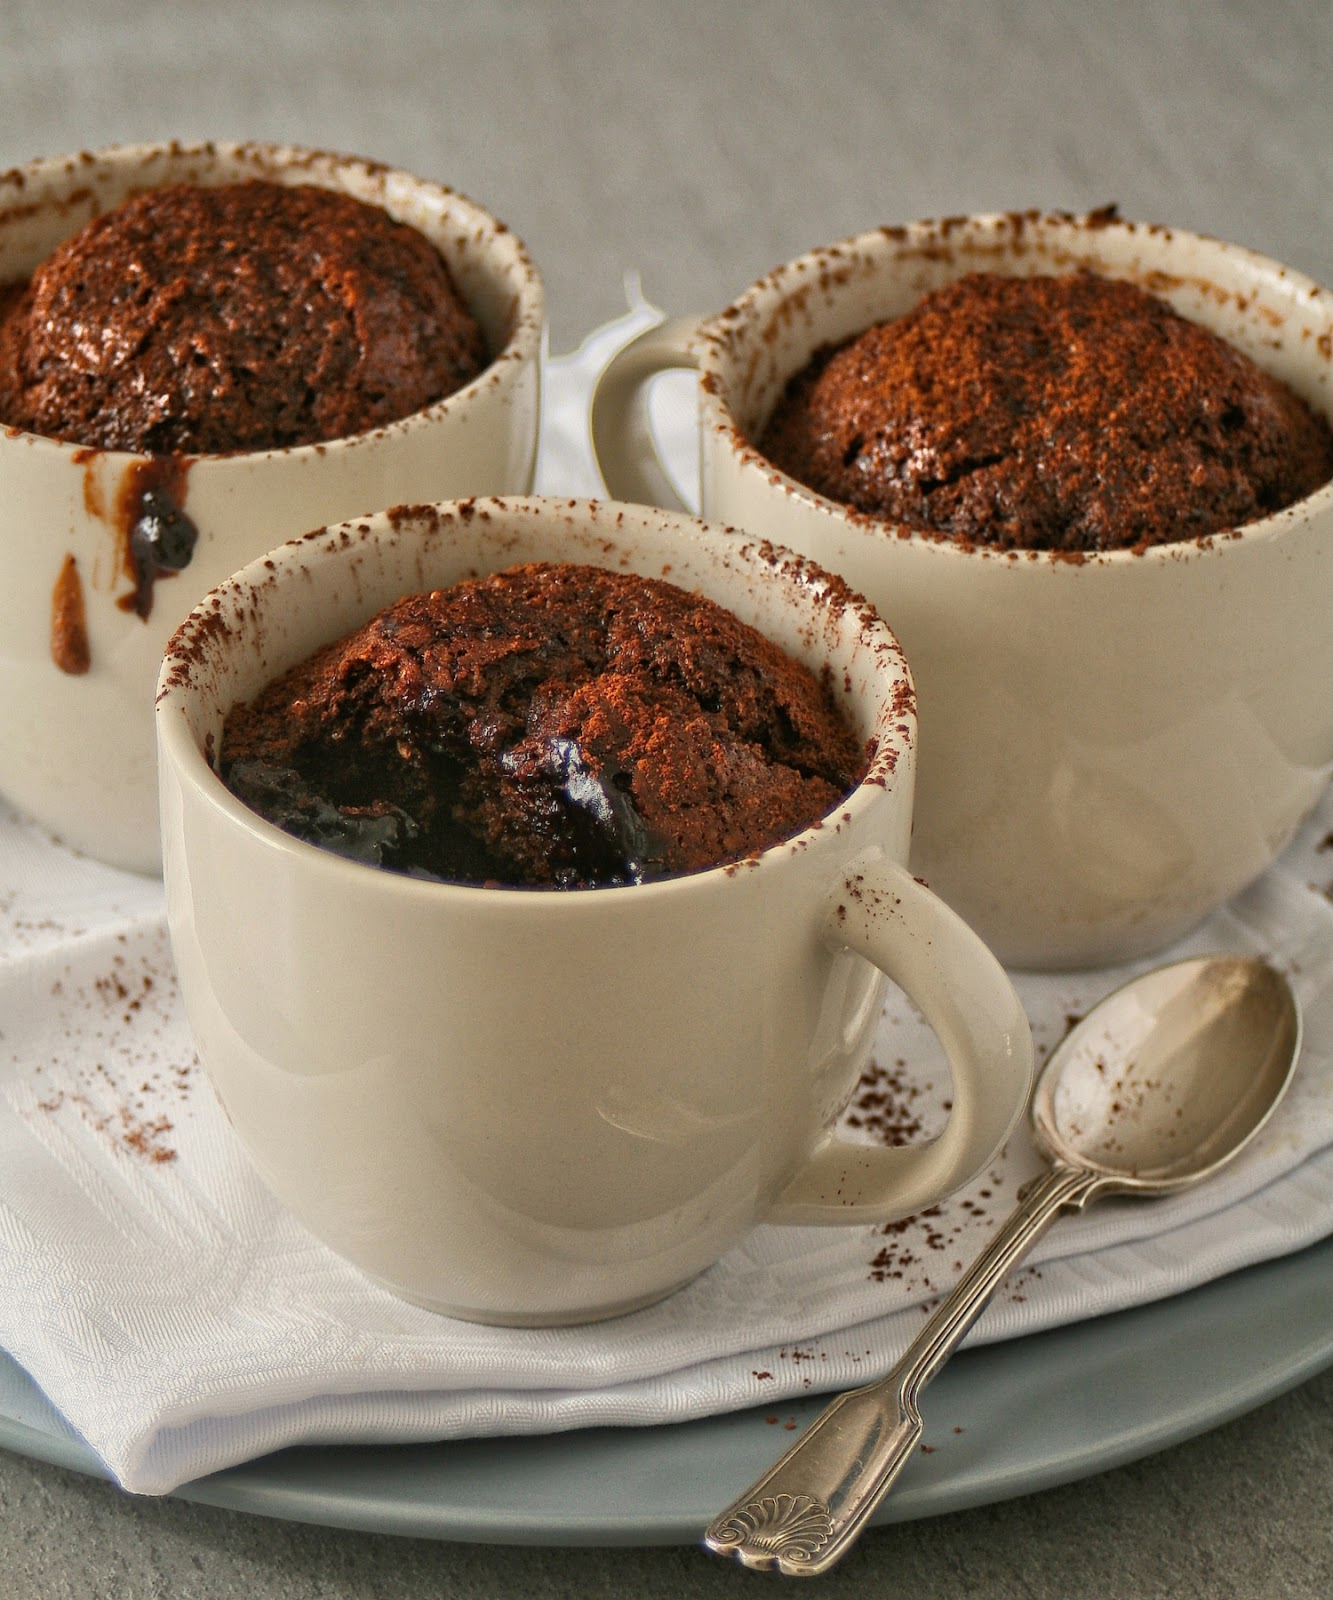 Mini self-saucing chocolate and coconut puddings.